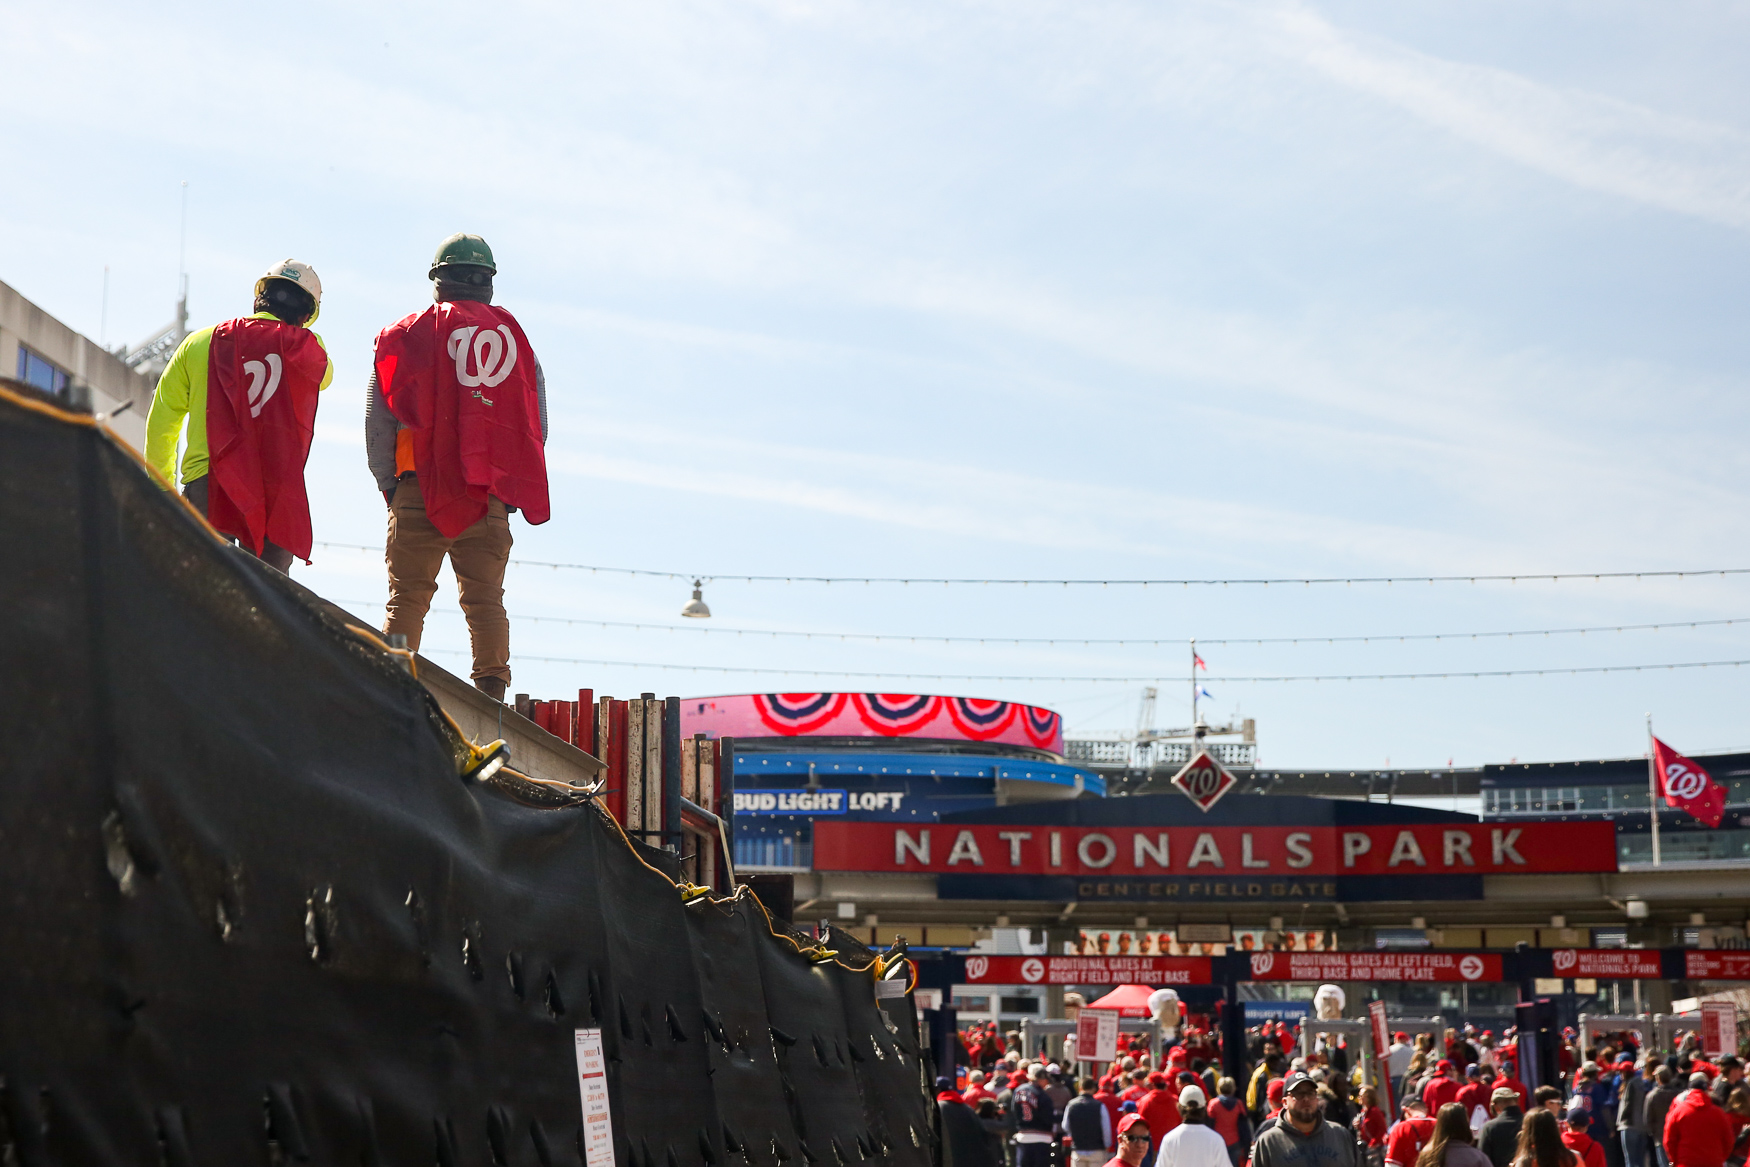 The Washington Nationals played against the New York Mets at home for the opening day of the 2019 baseball season and thousands of fans showed up to cheer them on. Adults and kids alike wore baseball gloves in the hopes of catching a stray ball and some fans got especially creative with their Nats-themed looks. (Amanda Andrade-Rhoades/DC Refined)